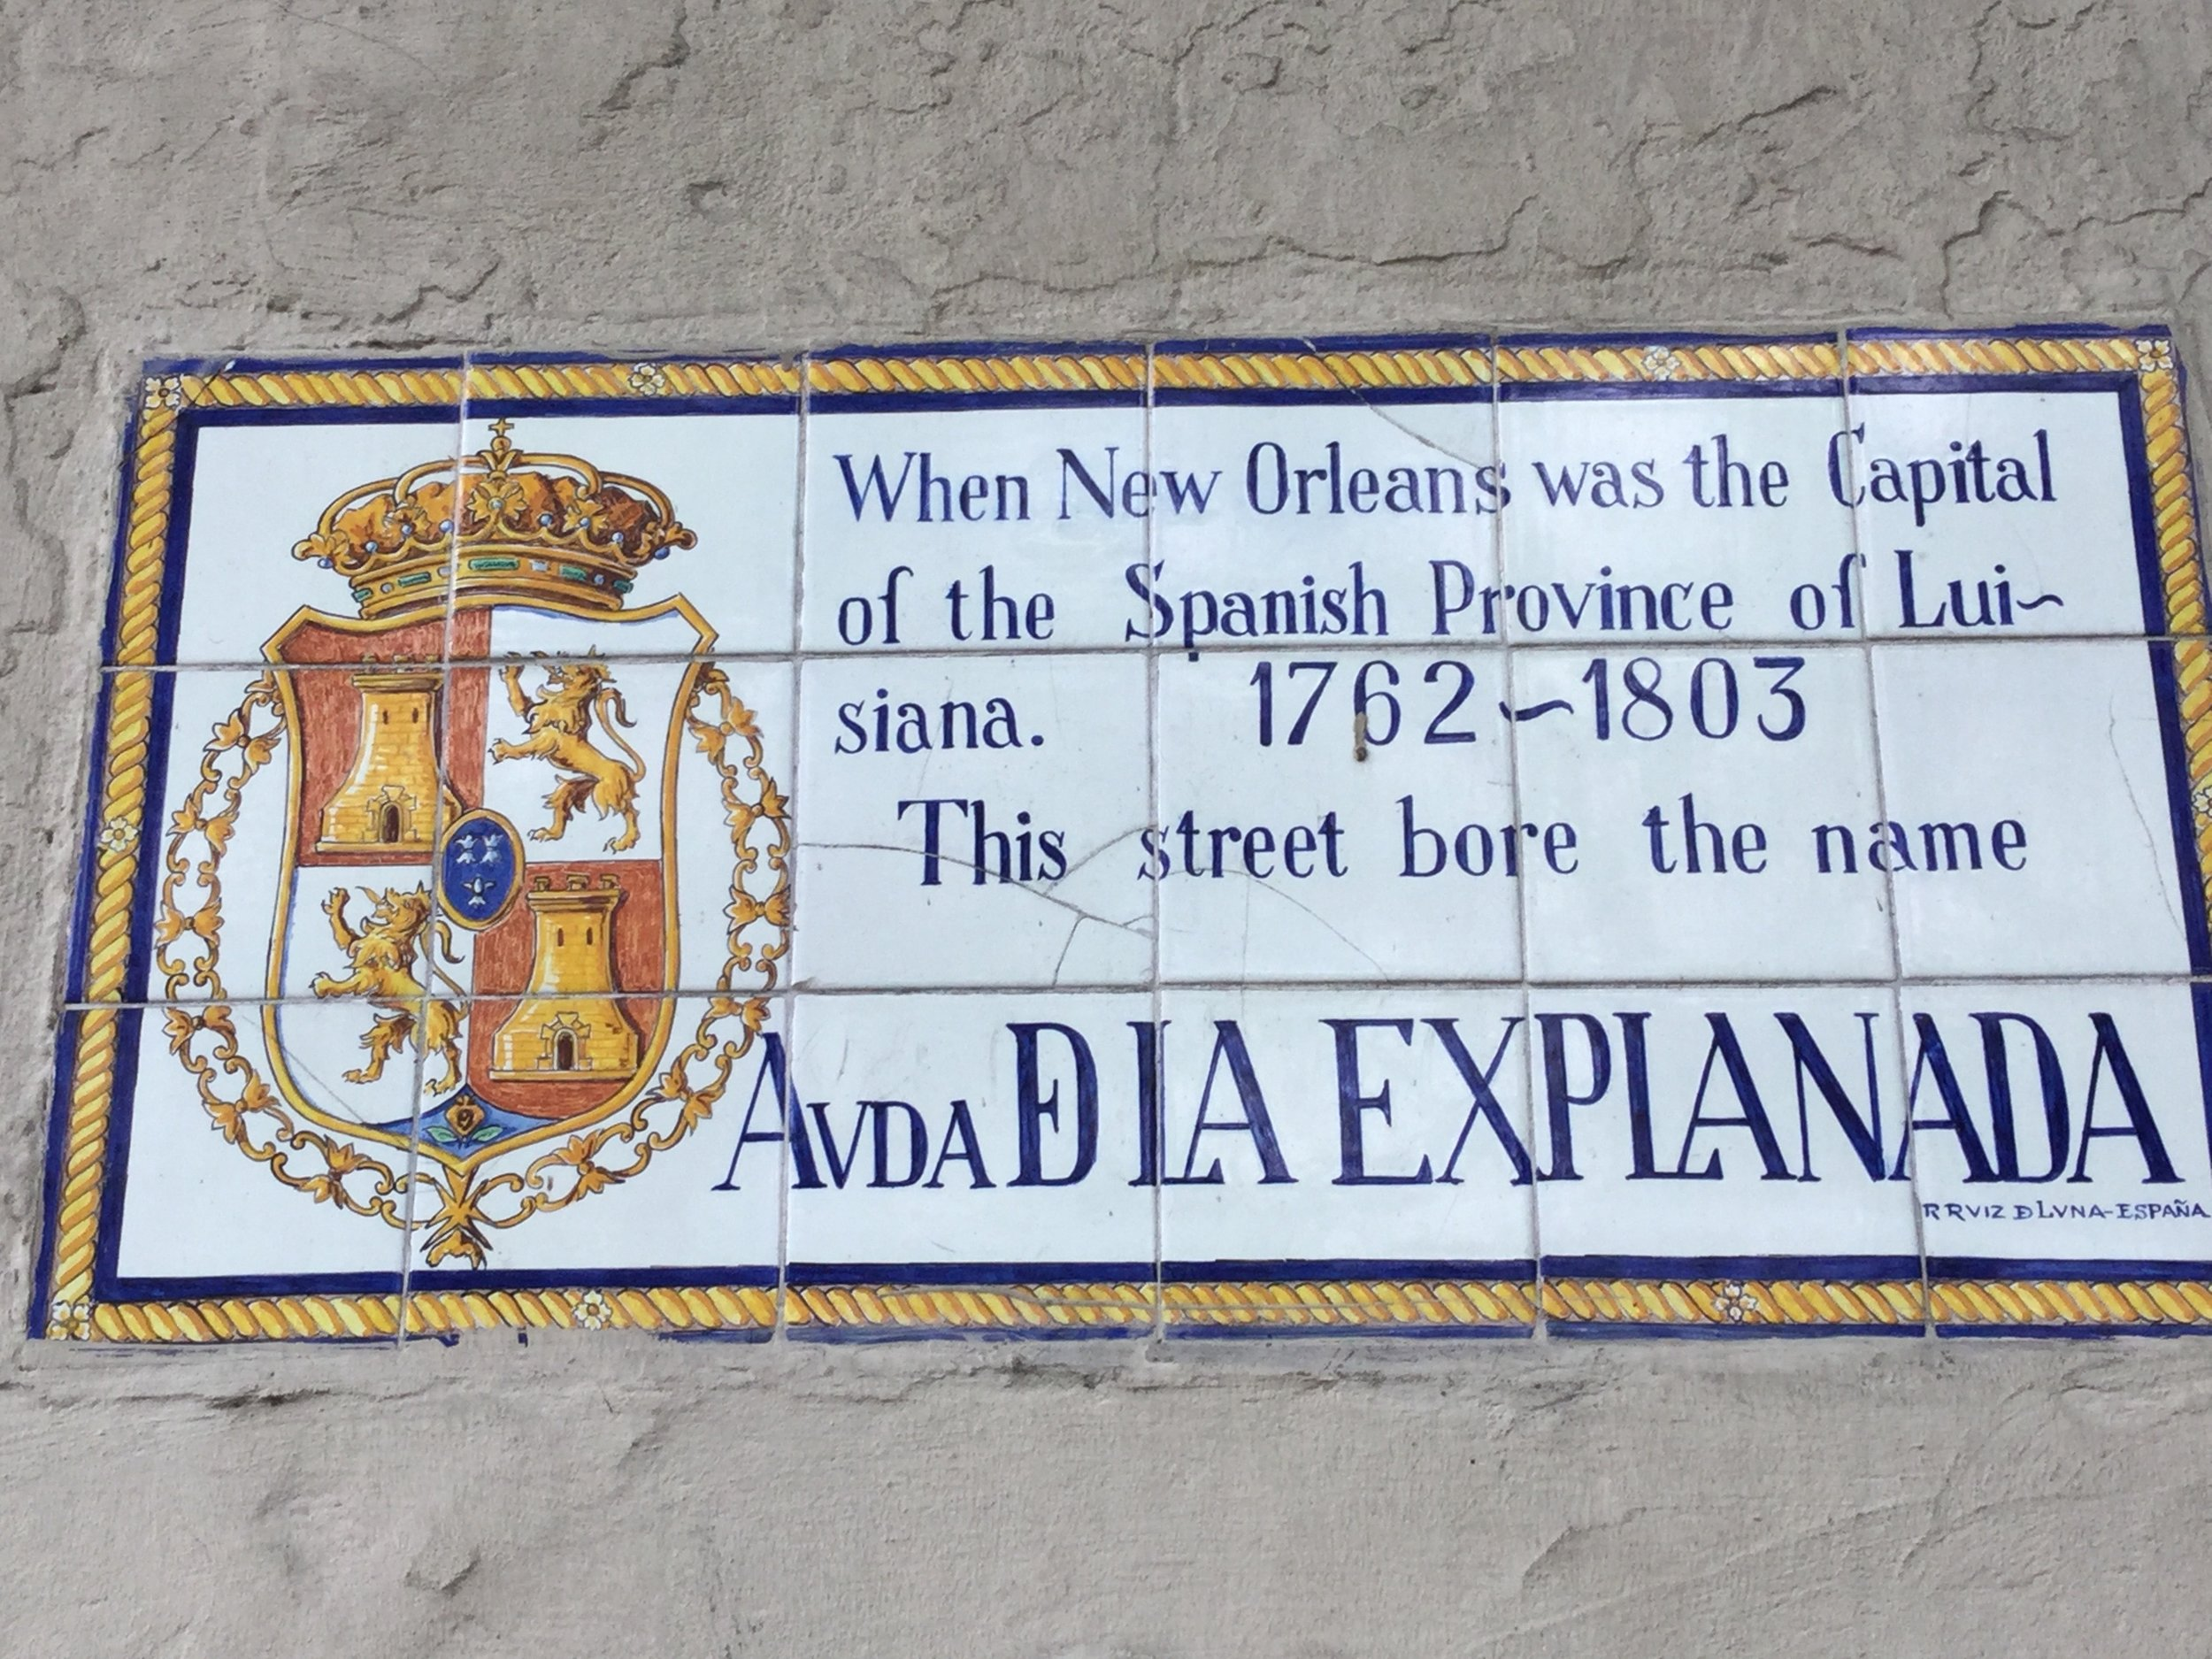 Esplanade Avenue has a long history: French, Spanish, French again, American, New Orleans the whole time.